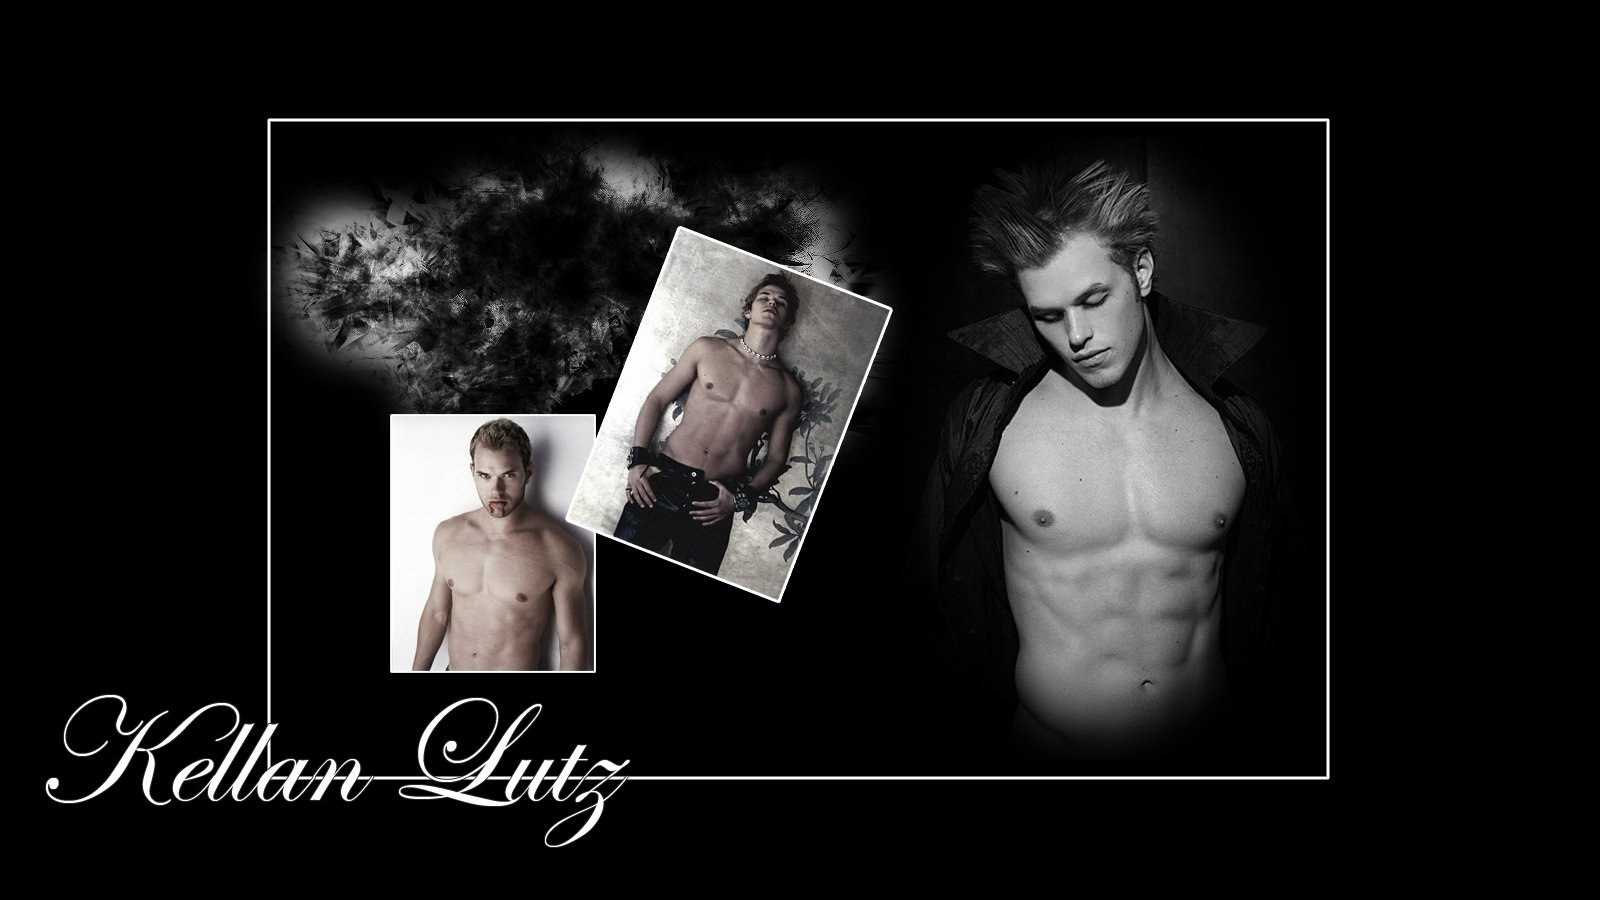 Kellan-Lutz-twilight-series-8886370-1600-900 - сумреки обои